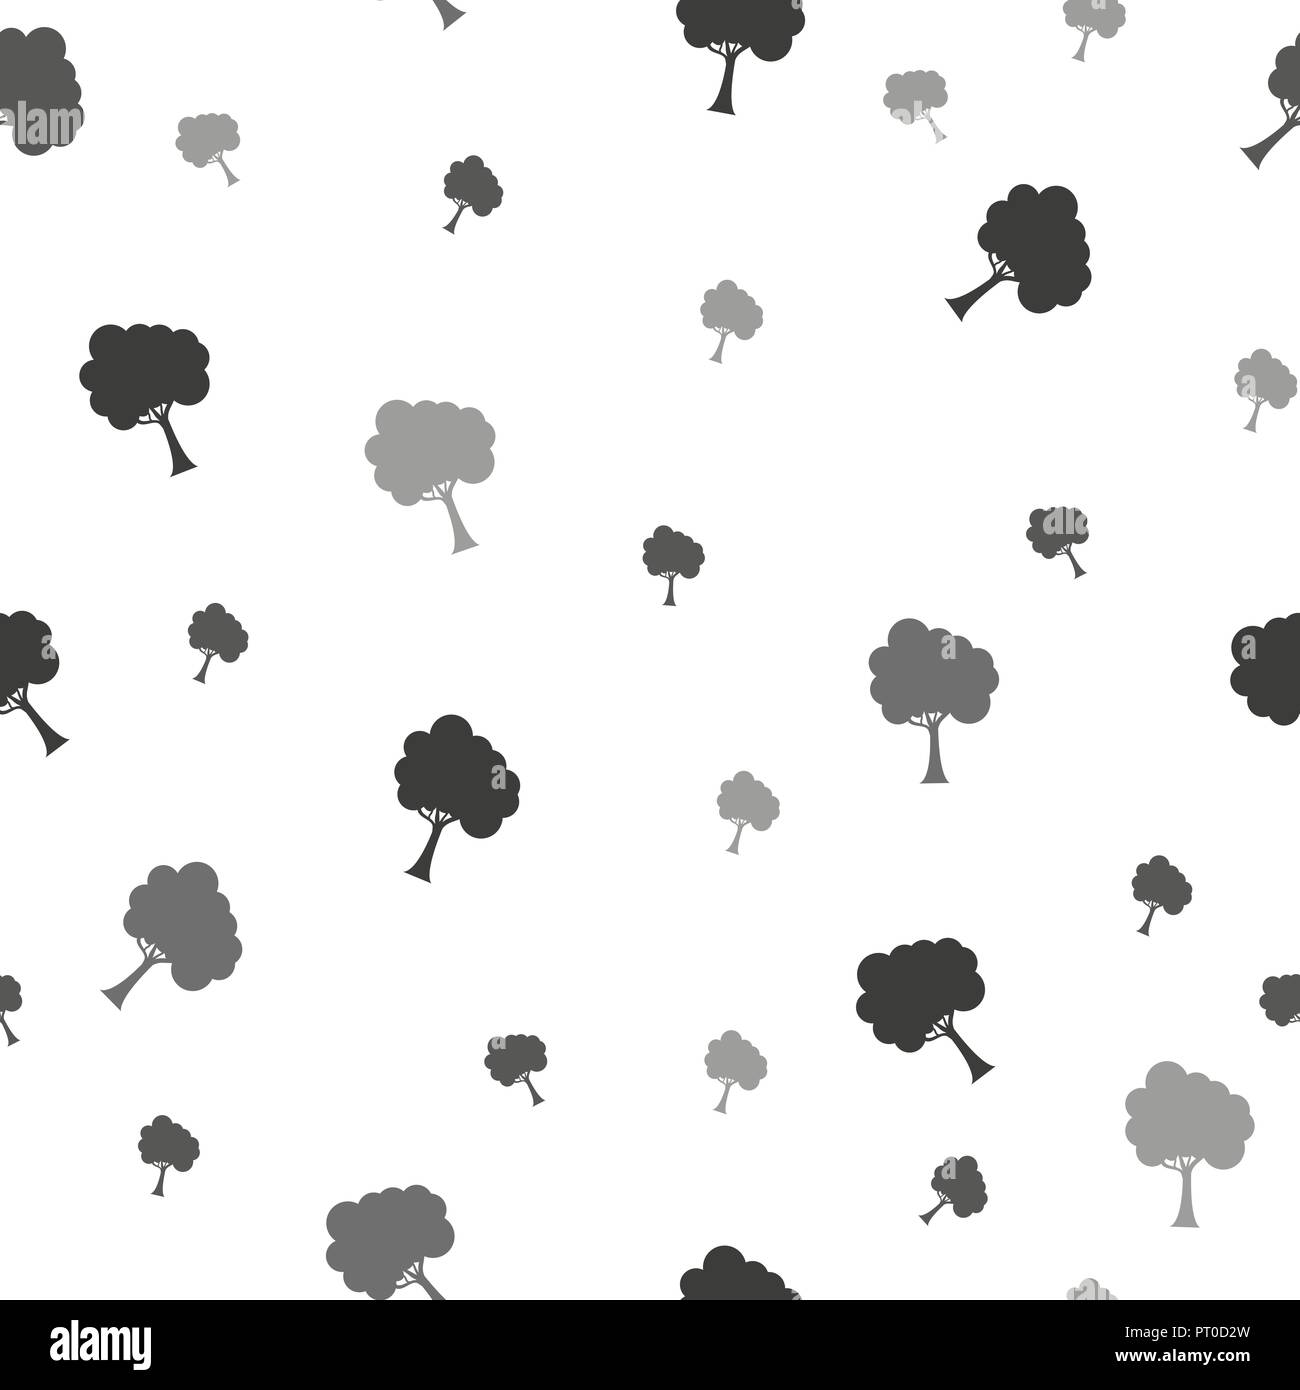 Birch Tree Seamless Pattern Vector Fabricdesign Element For Wallpapers Web Site Background Baby Shower Invitation Birthday Card Scrapbooking Fabric Print Etc Vector Illustration Stock Vector Image Art Alamy